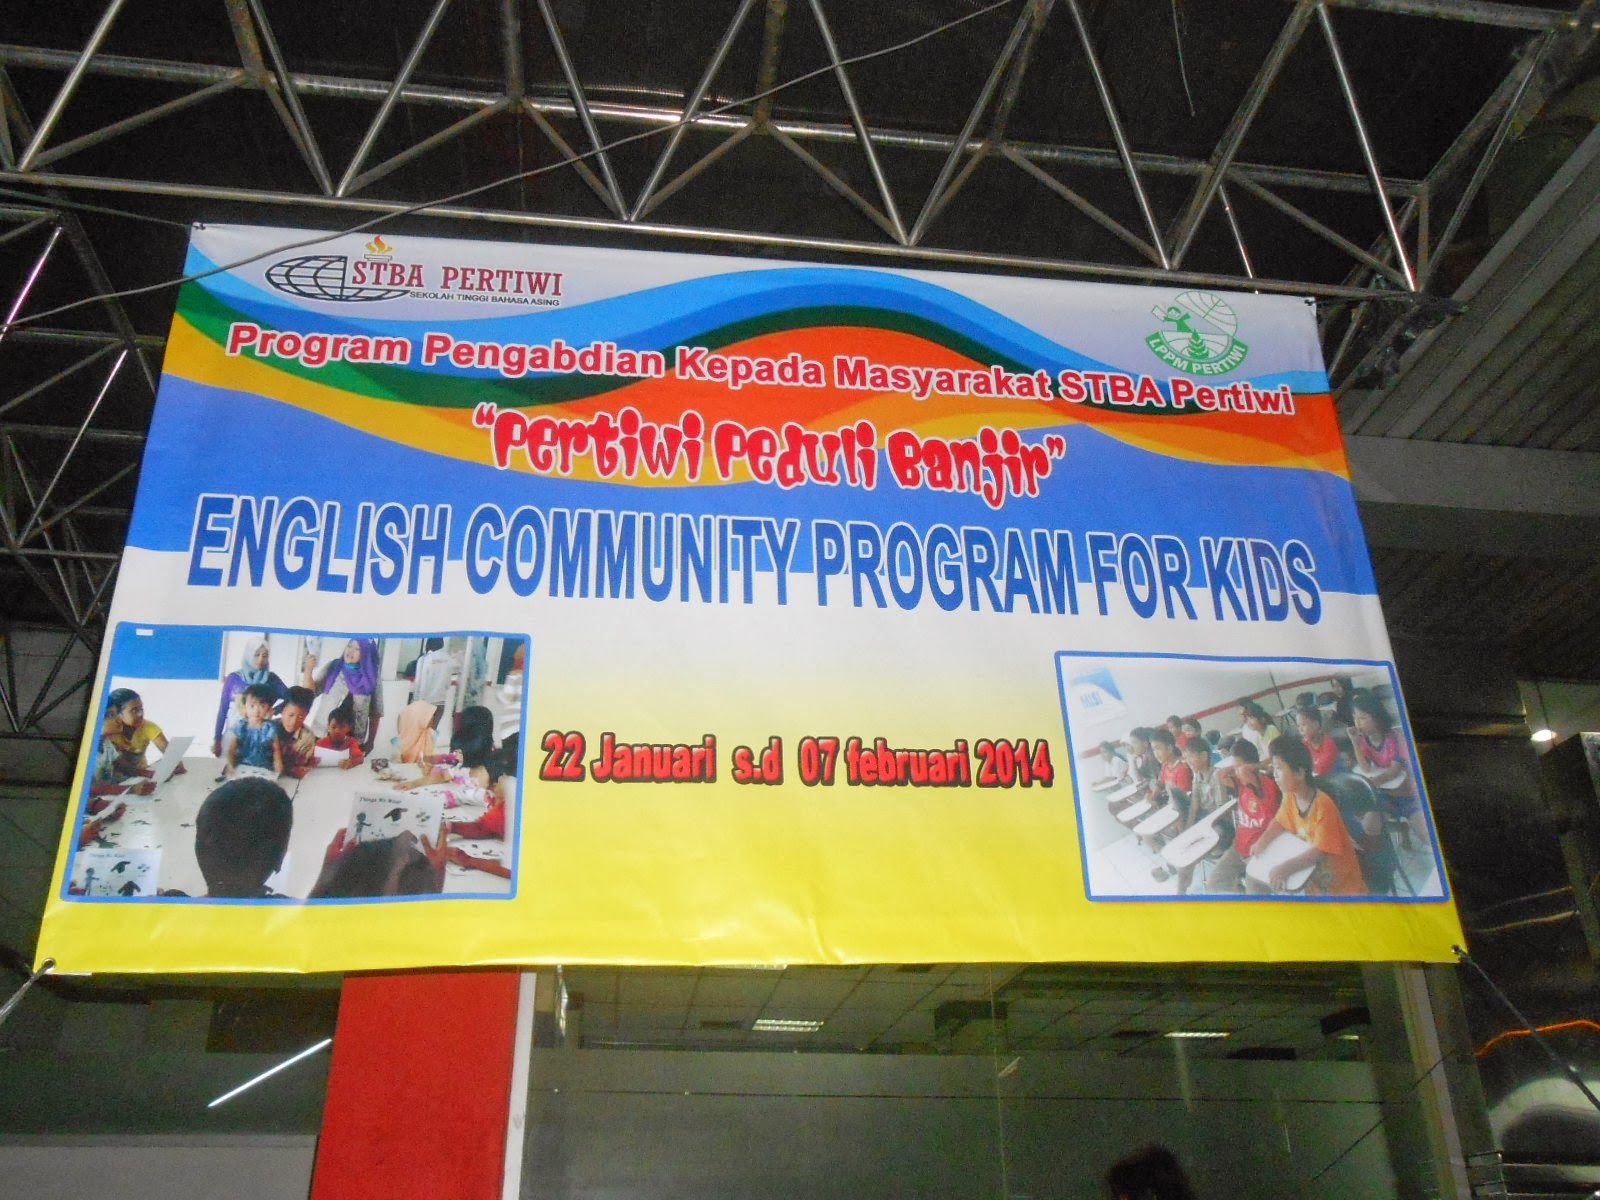 English Community Program